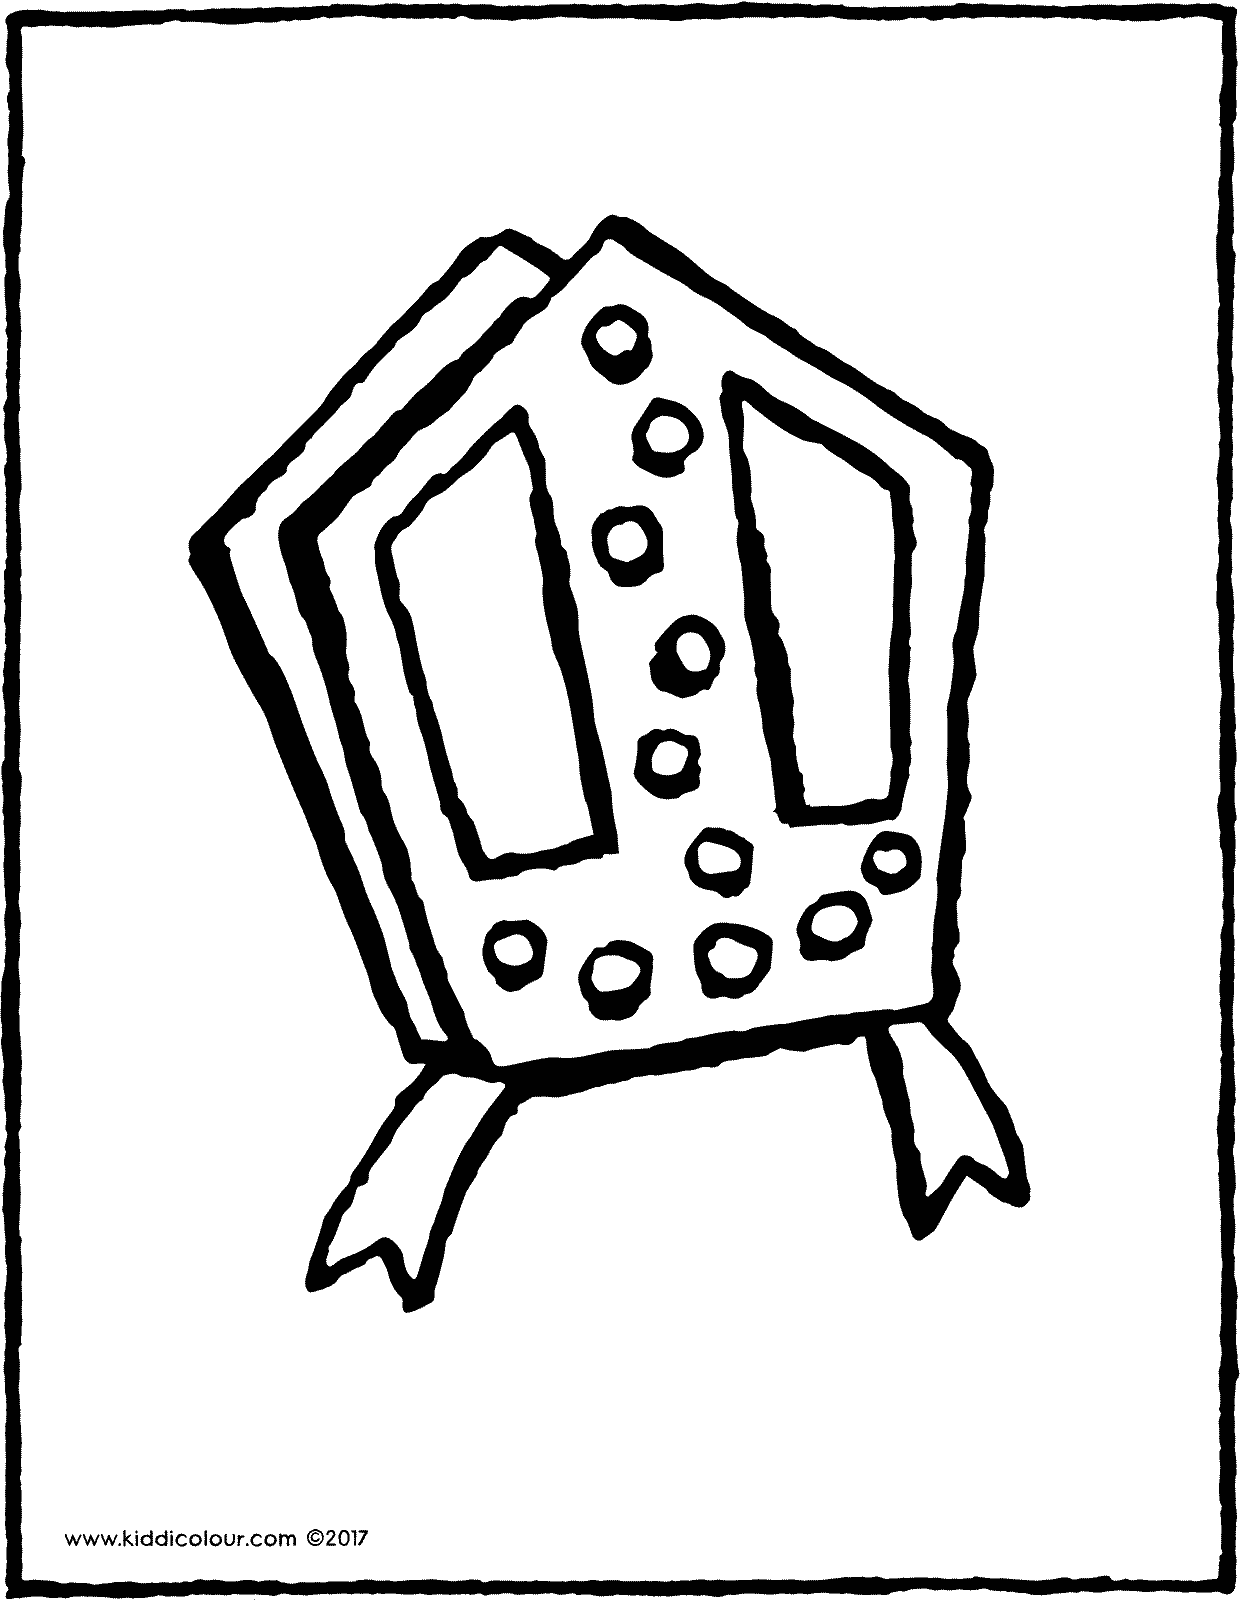 Saint Nicholas' mitre colouring page page drawing picture 01V